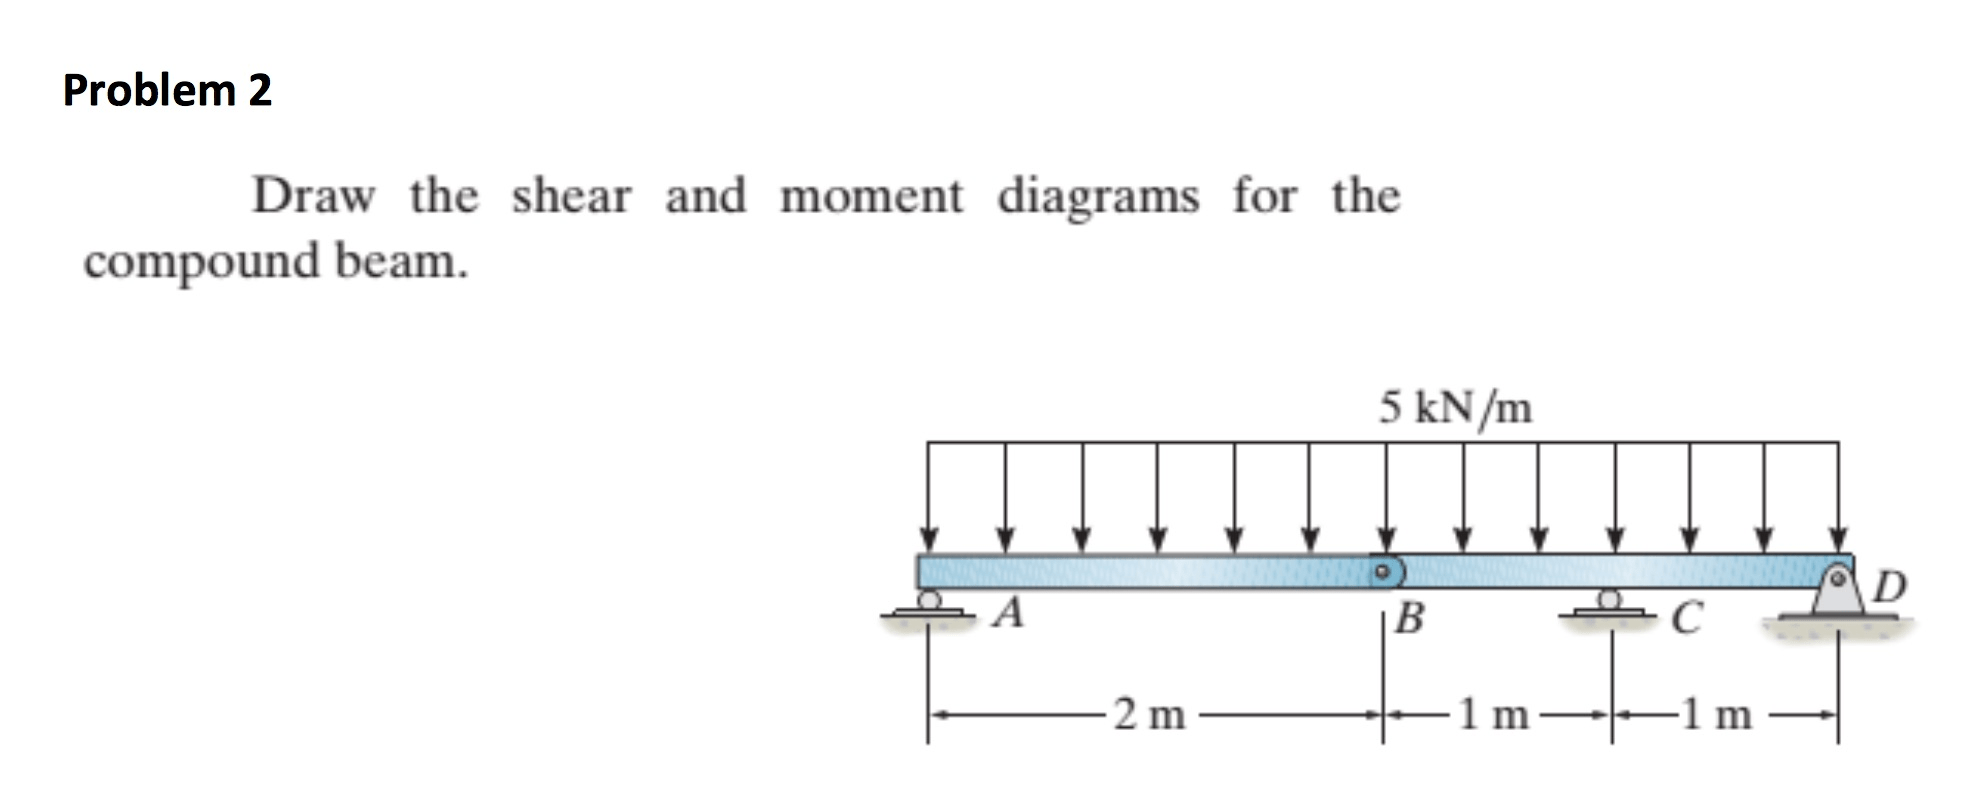 draw the shear and bending moment diagrams for beam honeywell s plan central heating wiring diagram solved compoun